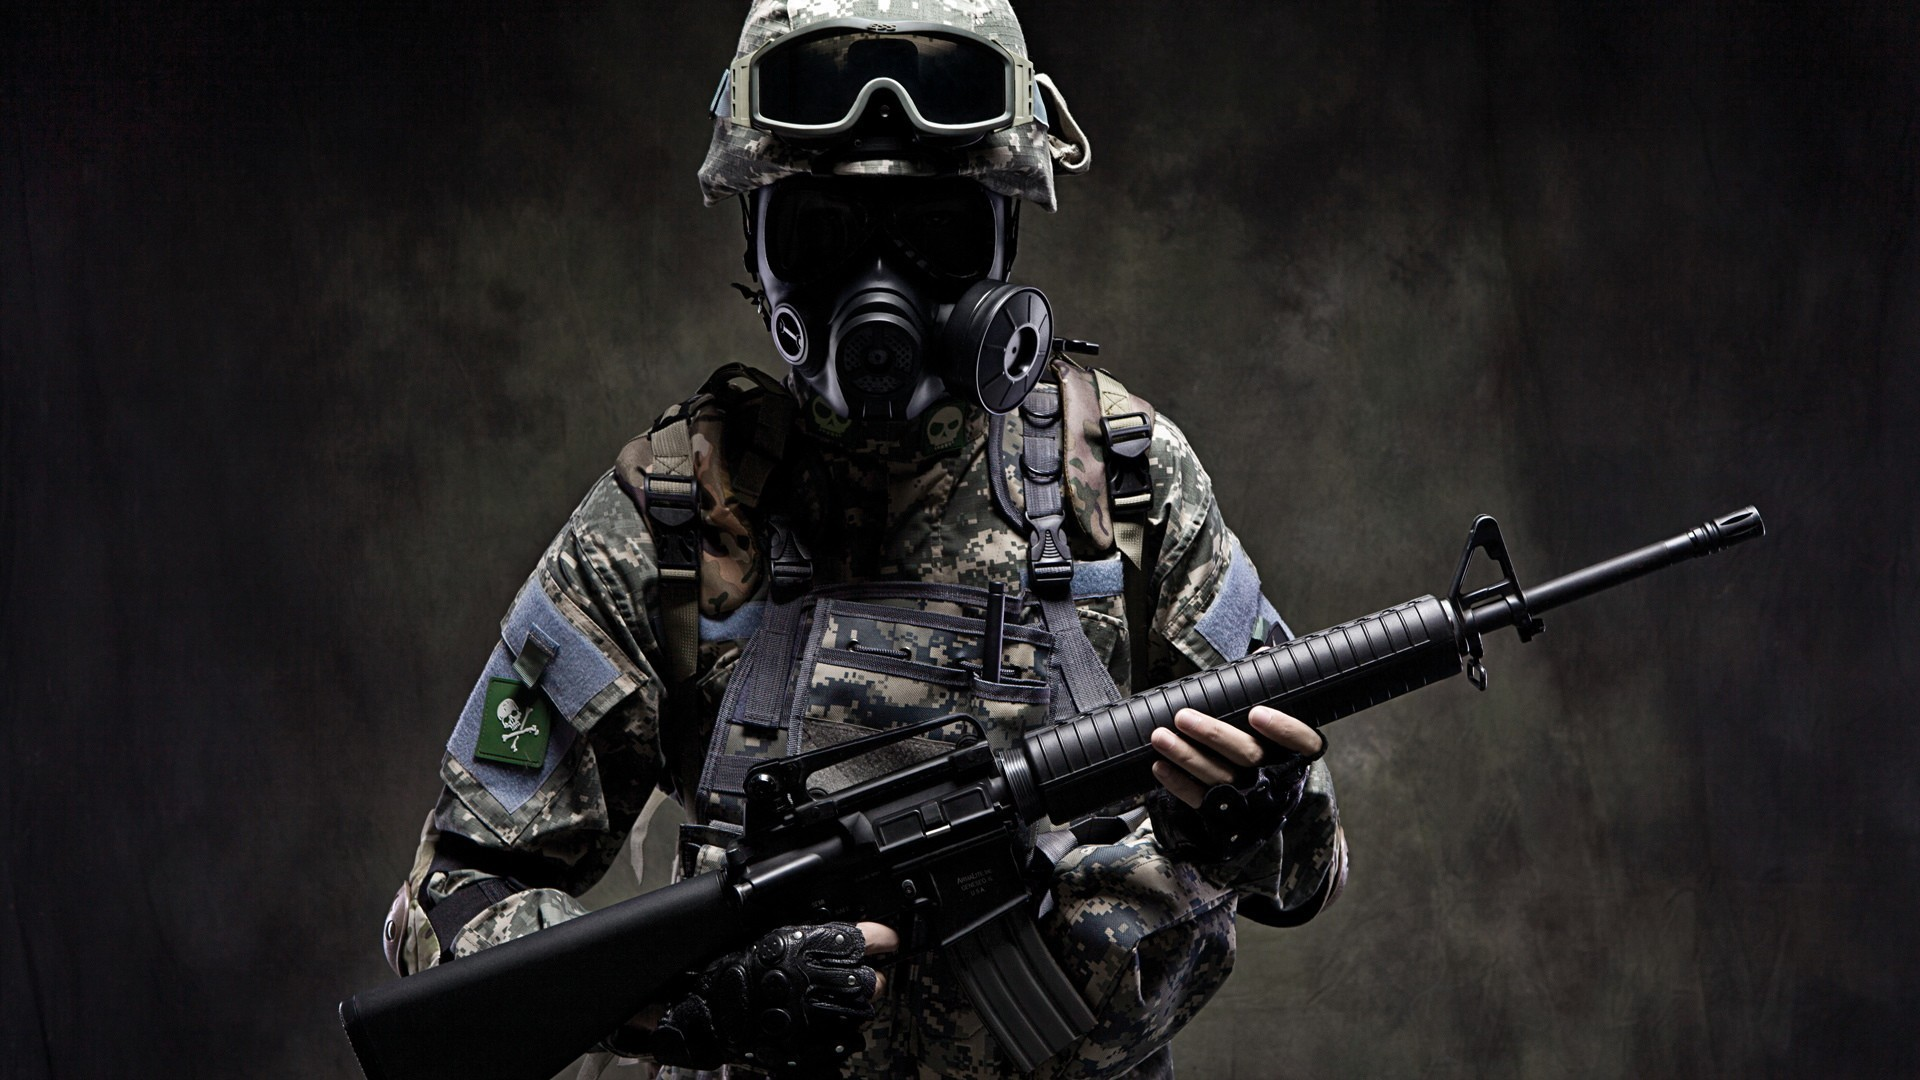 Army Wallpapers   Wallpaper High Definition High Quality Widescreen 1920x1080